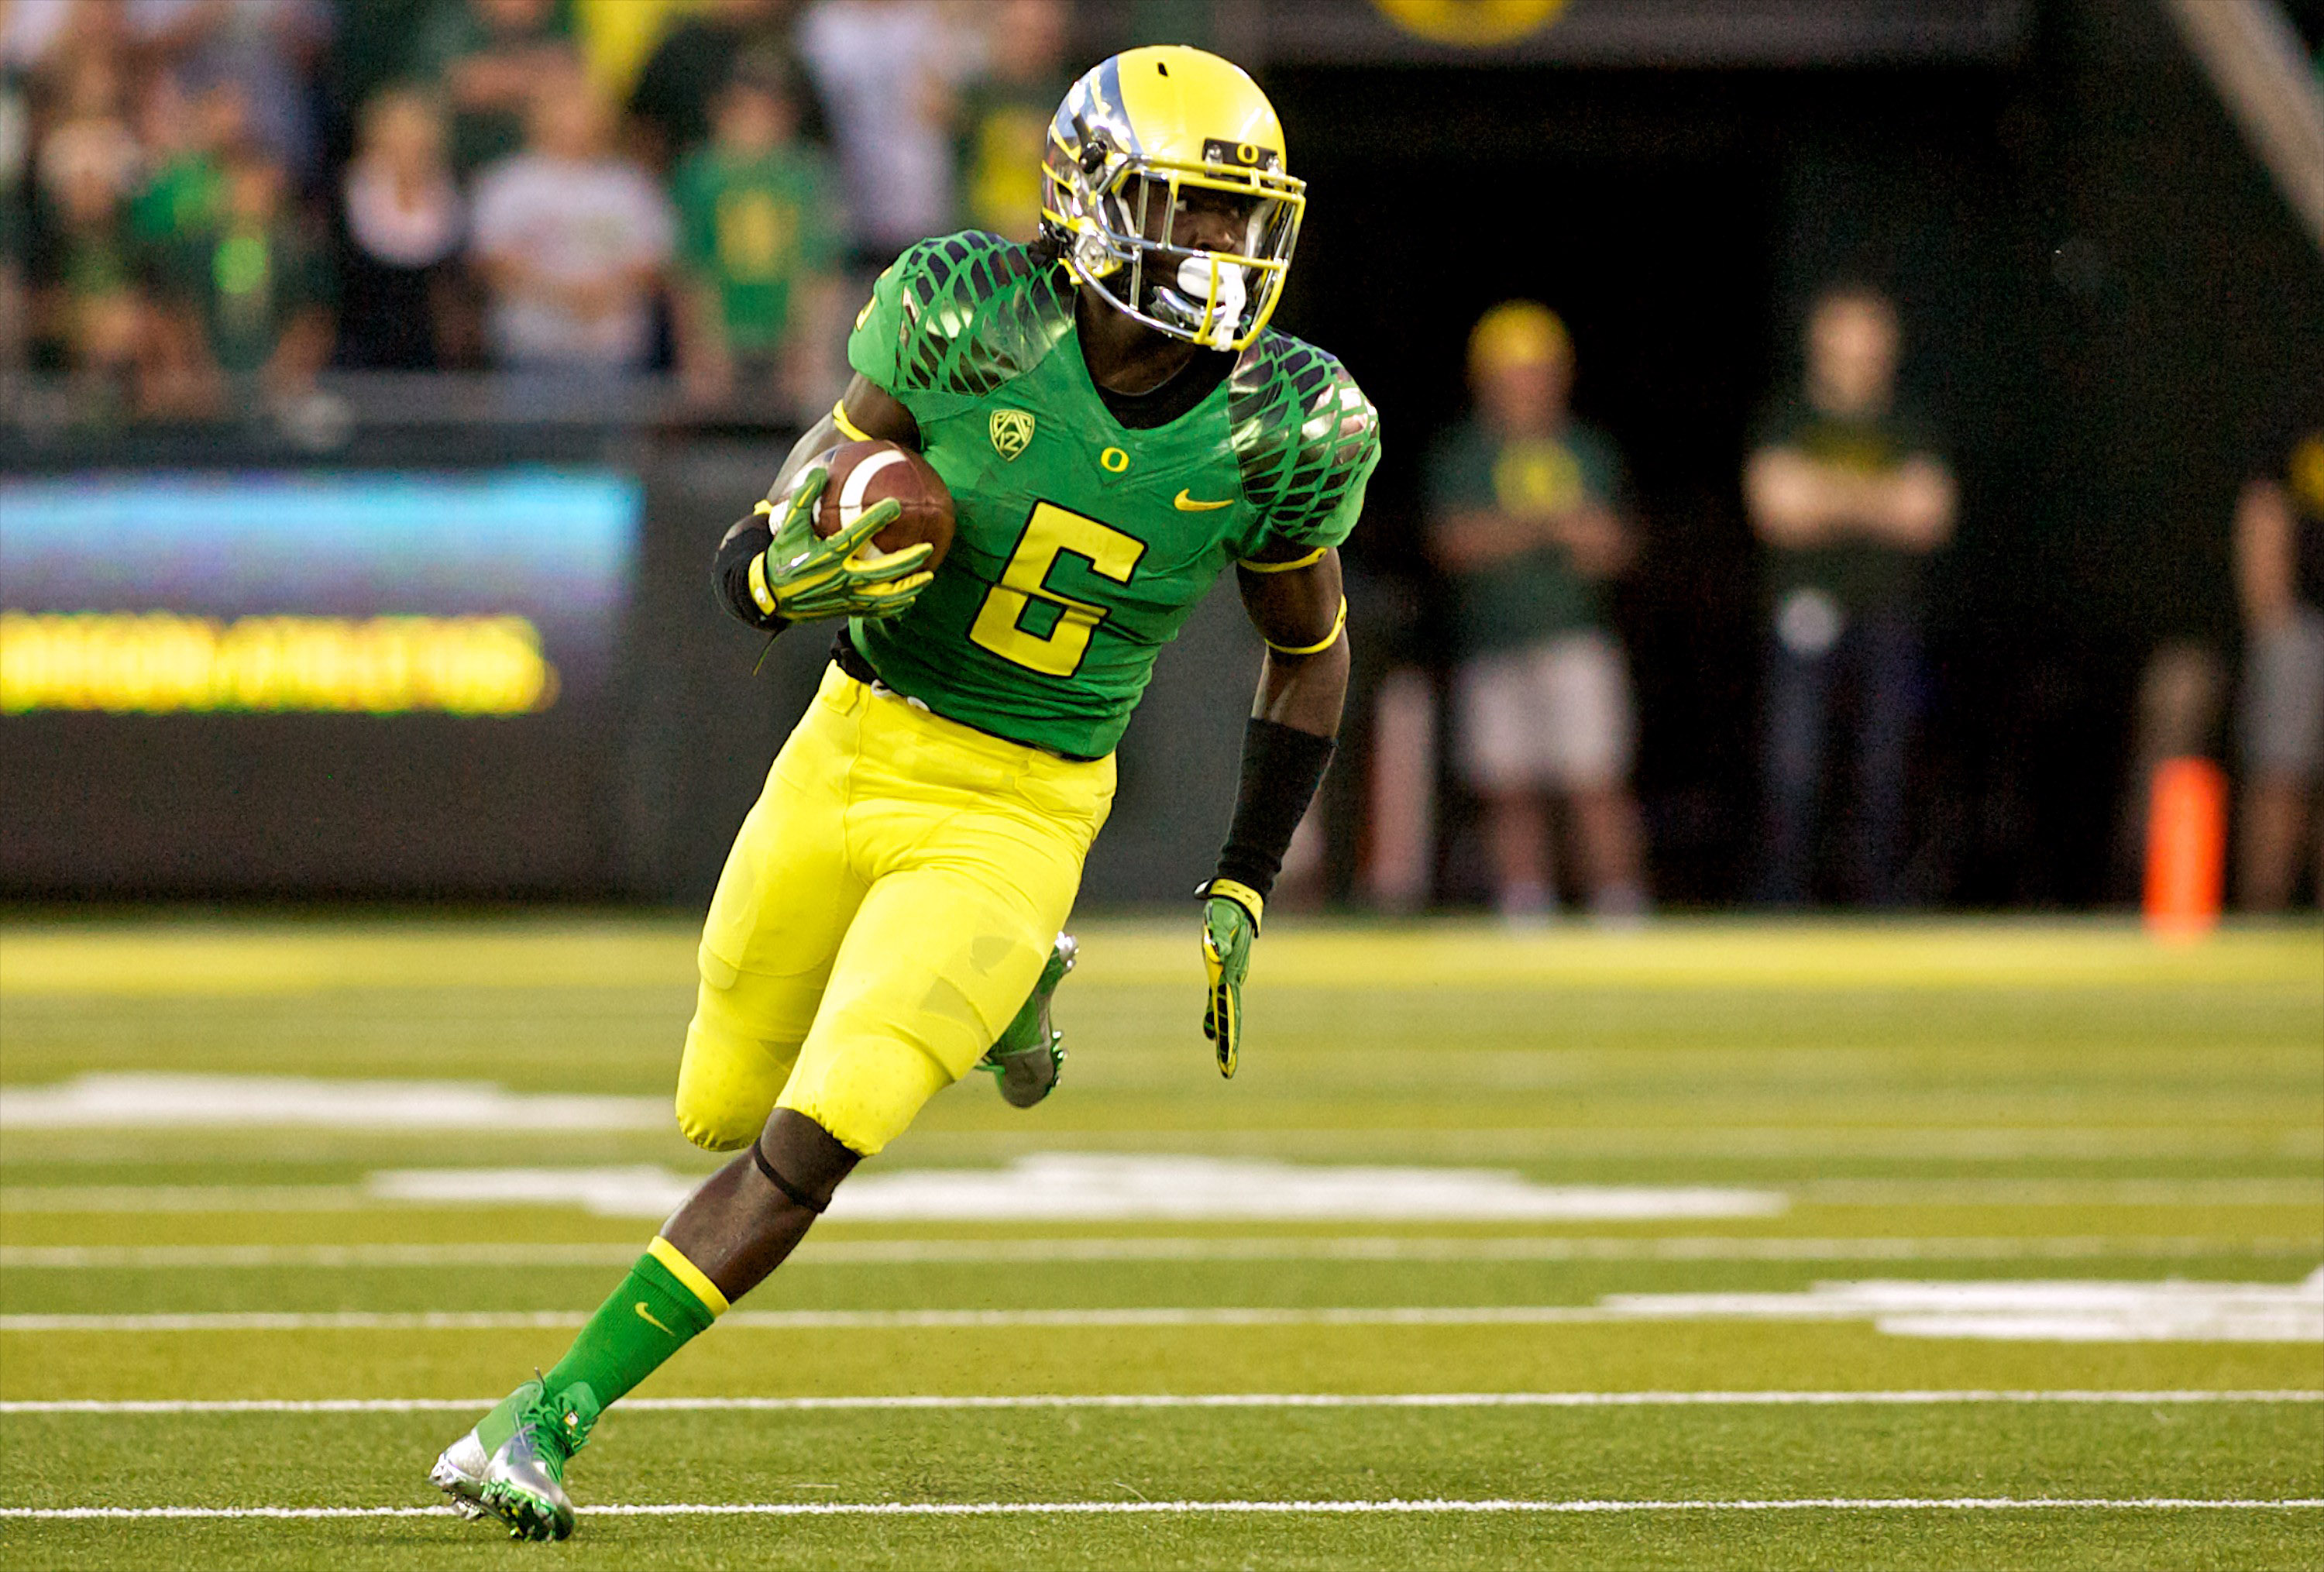 subs deanthony thomas - HD3000×2029